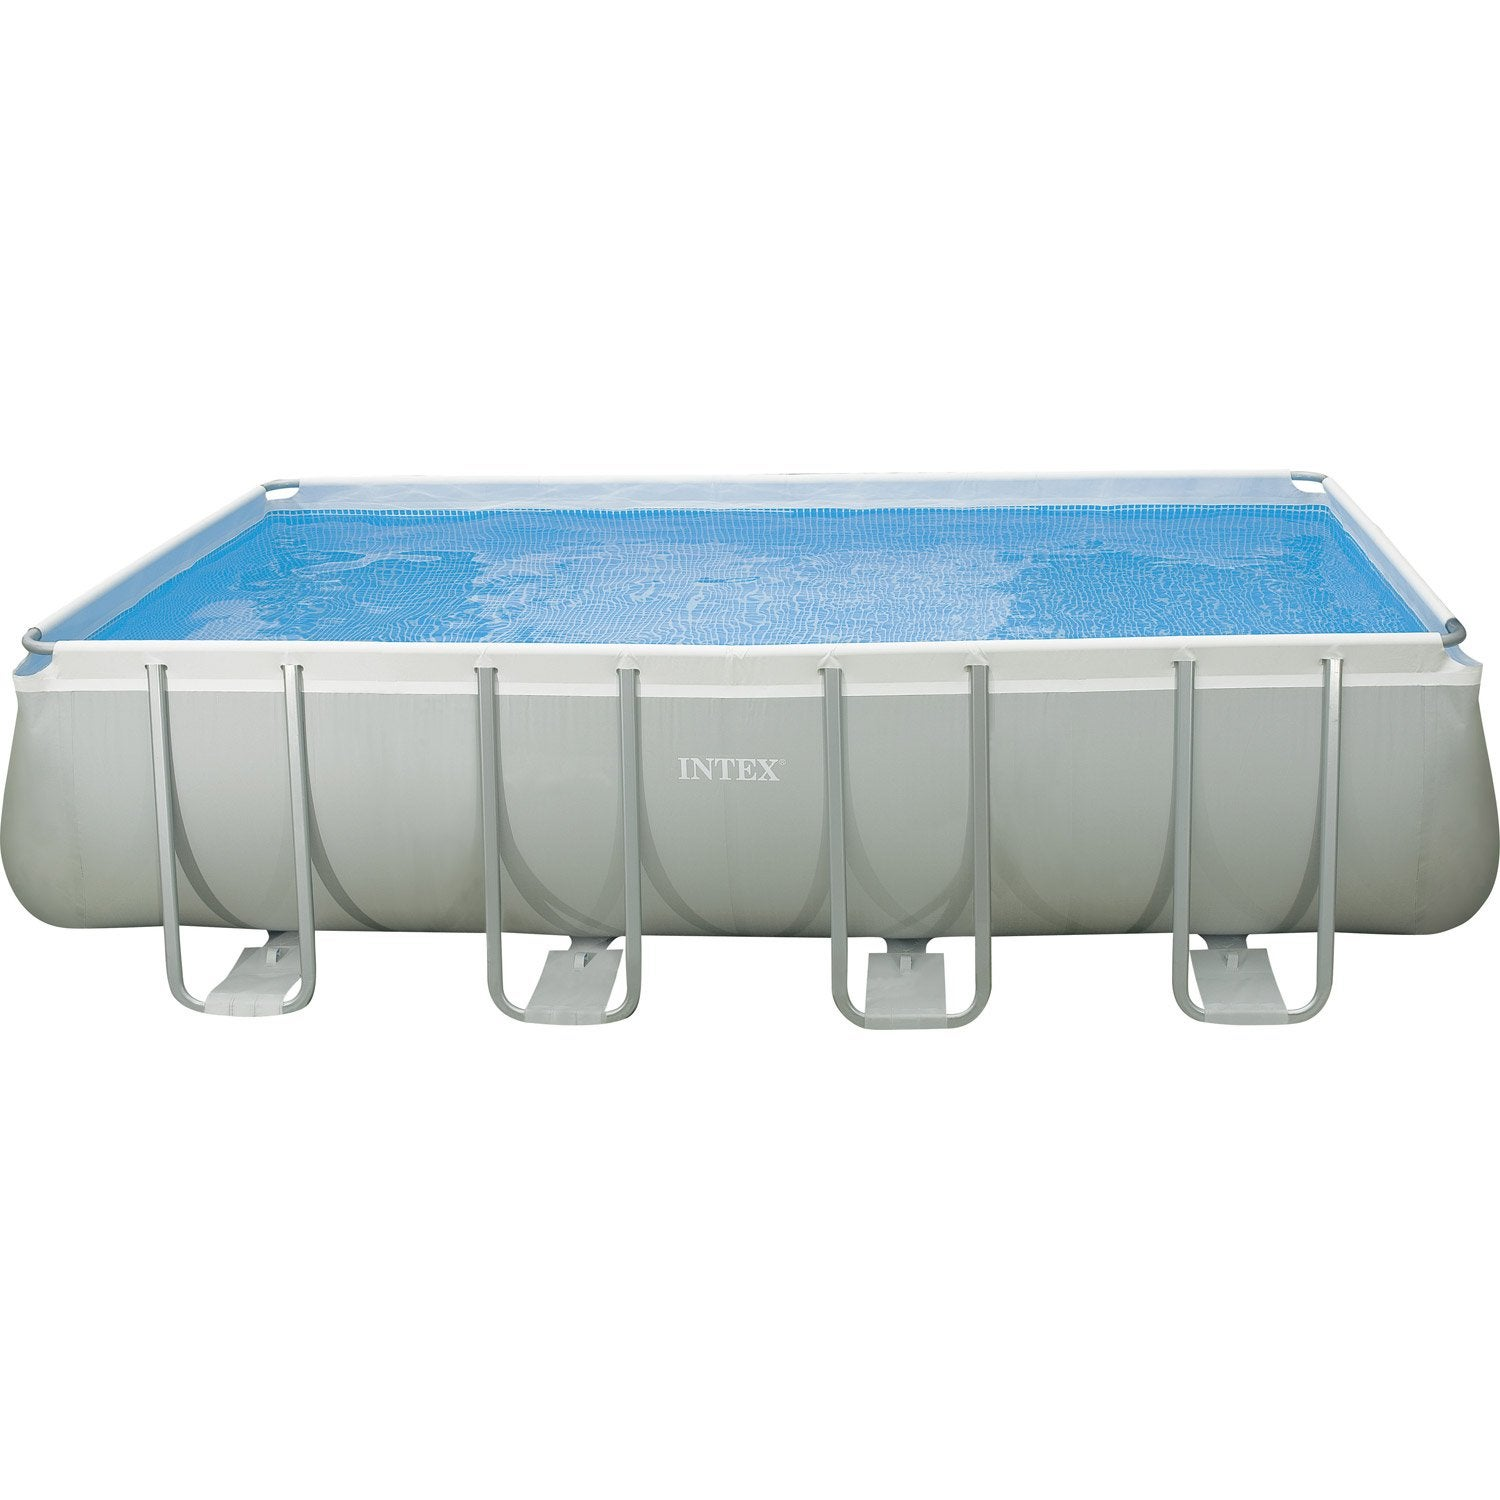 Piscine hors sol autoportante tubulaire intex l x l for Piscine tubulaire 1 22